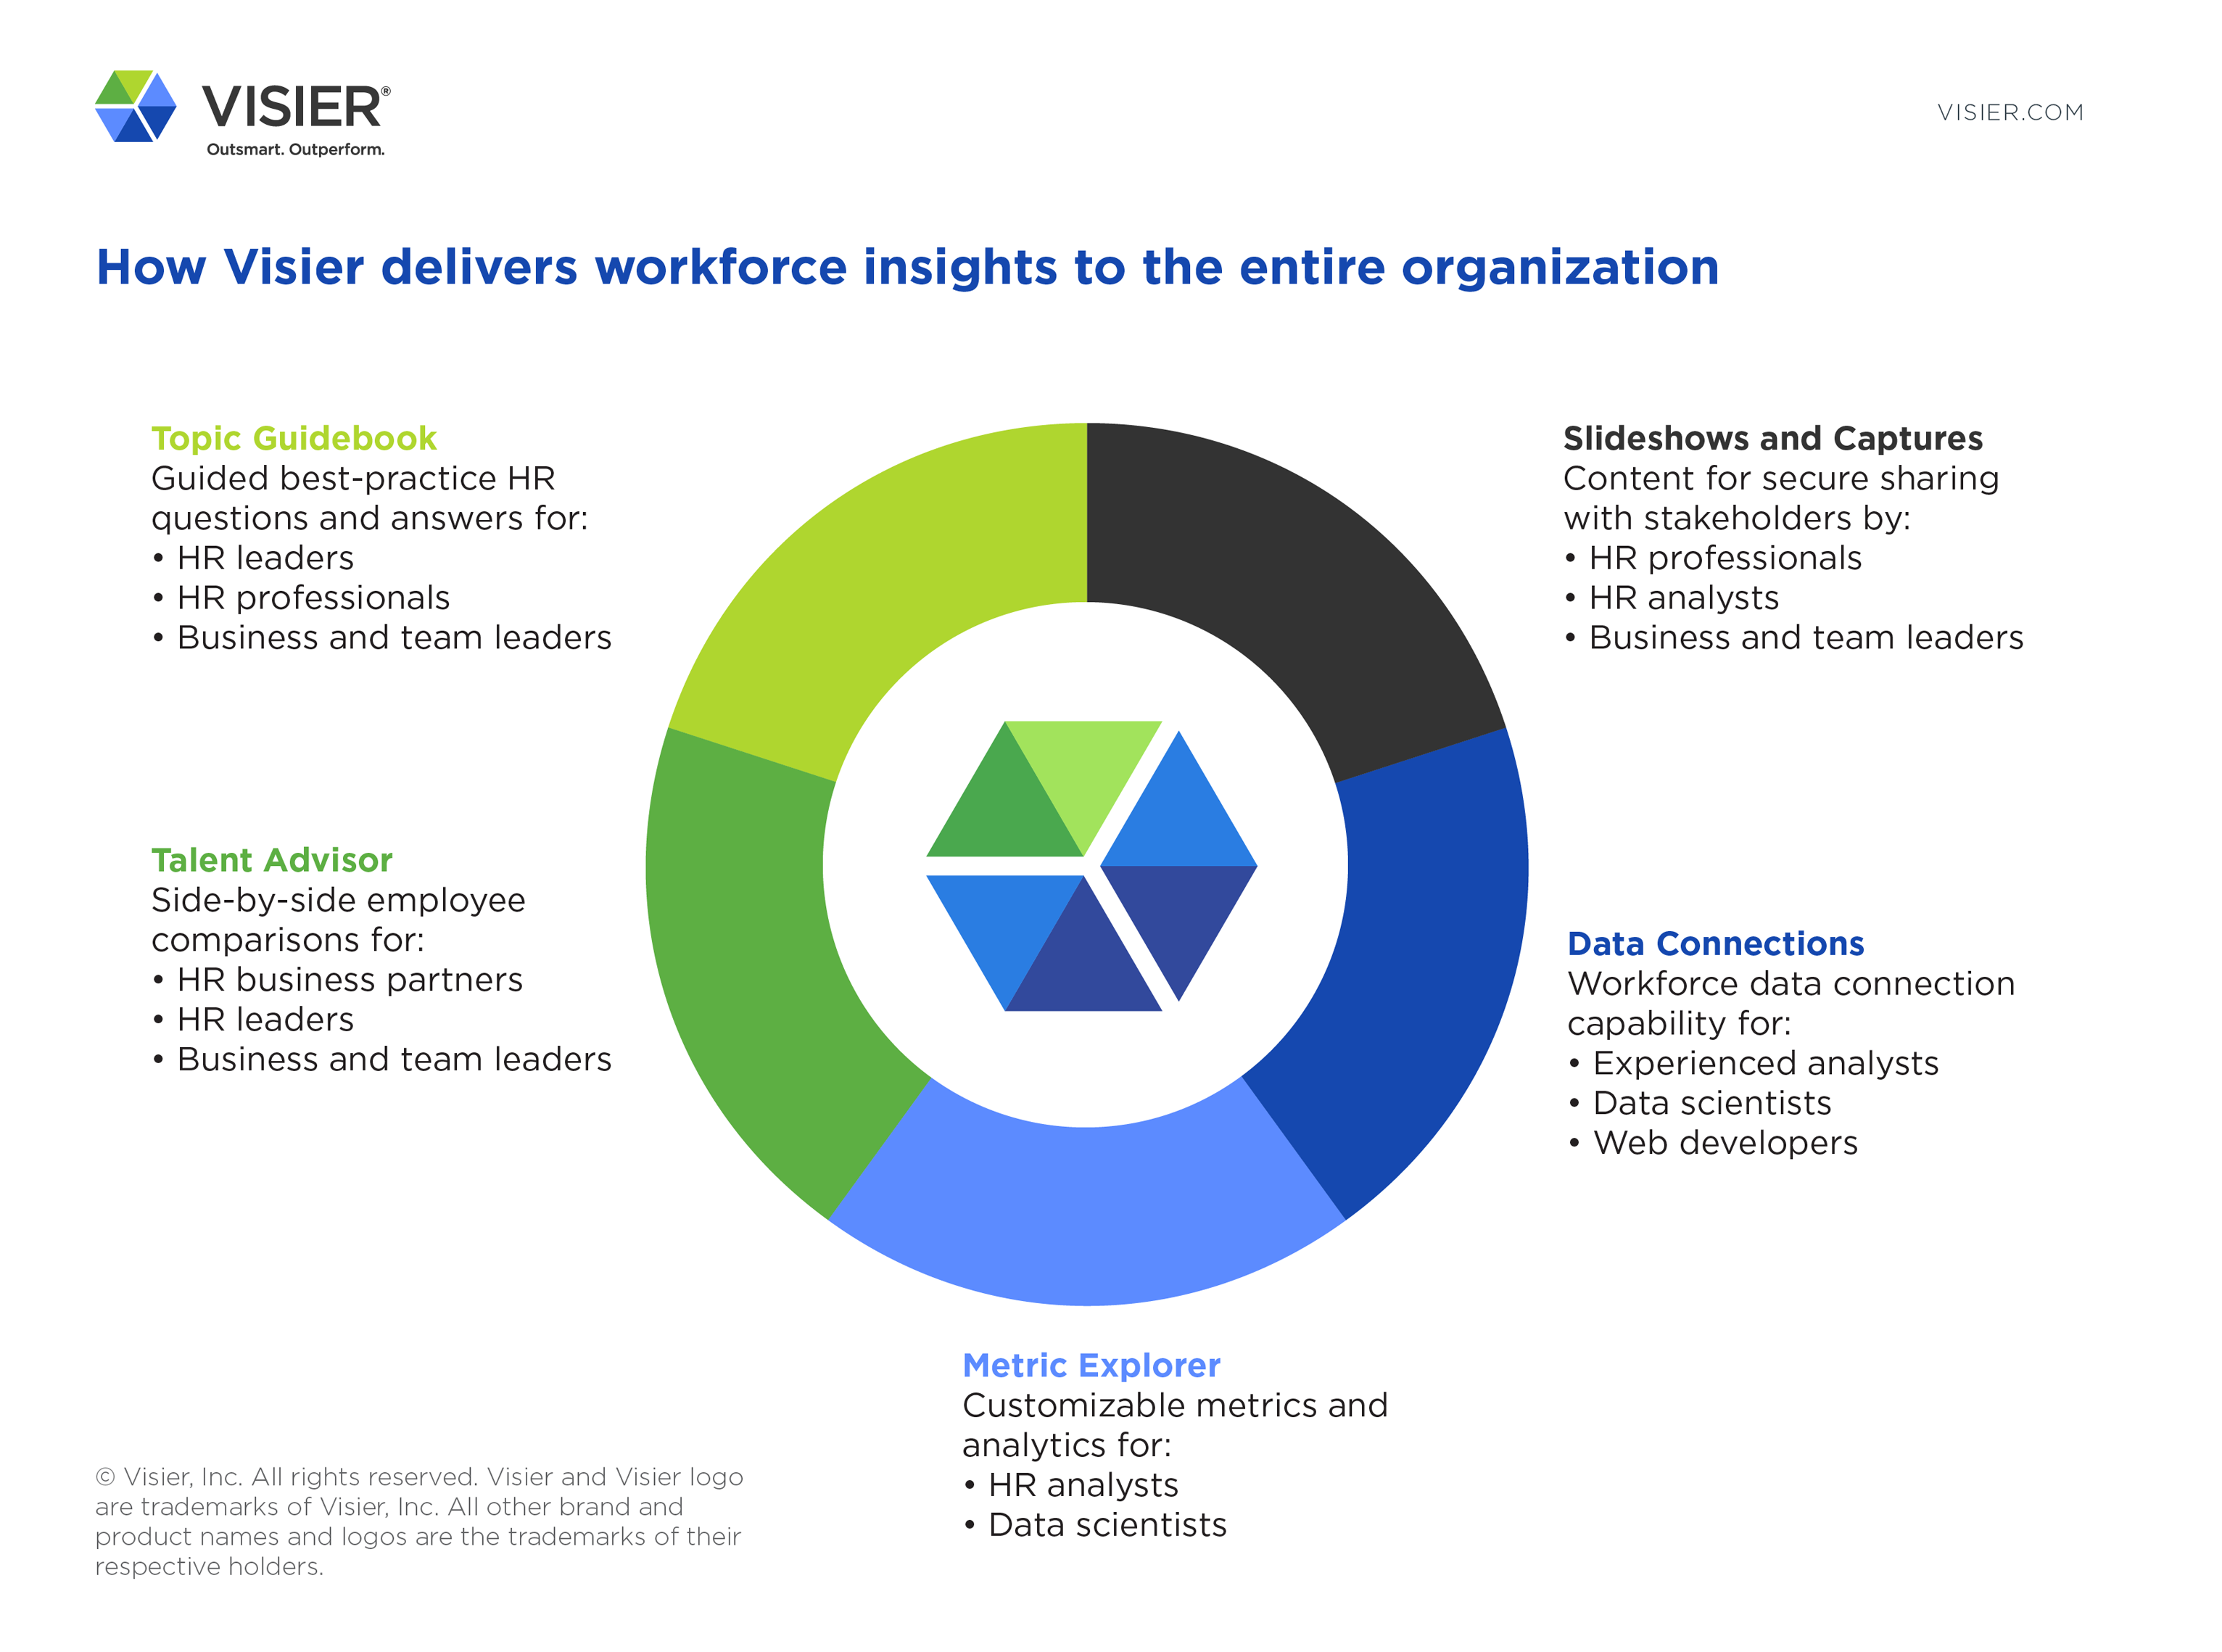 Infographic explaining how Visier now delivers workforce insights to the entire organization with the introduction of Data Connections